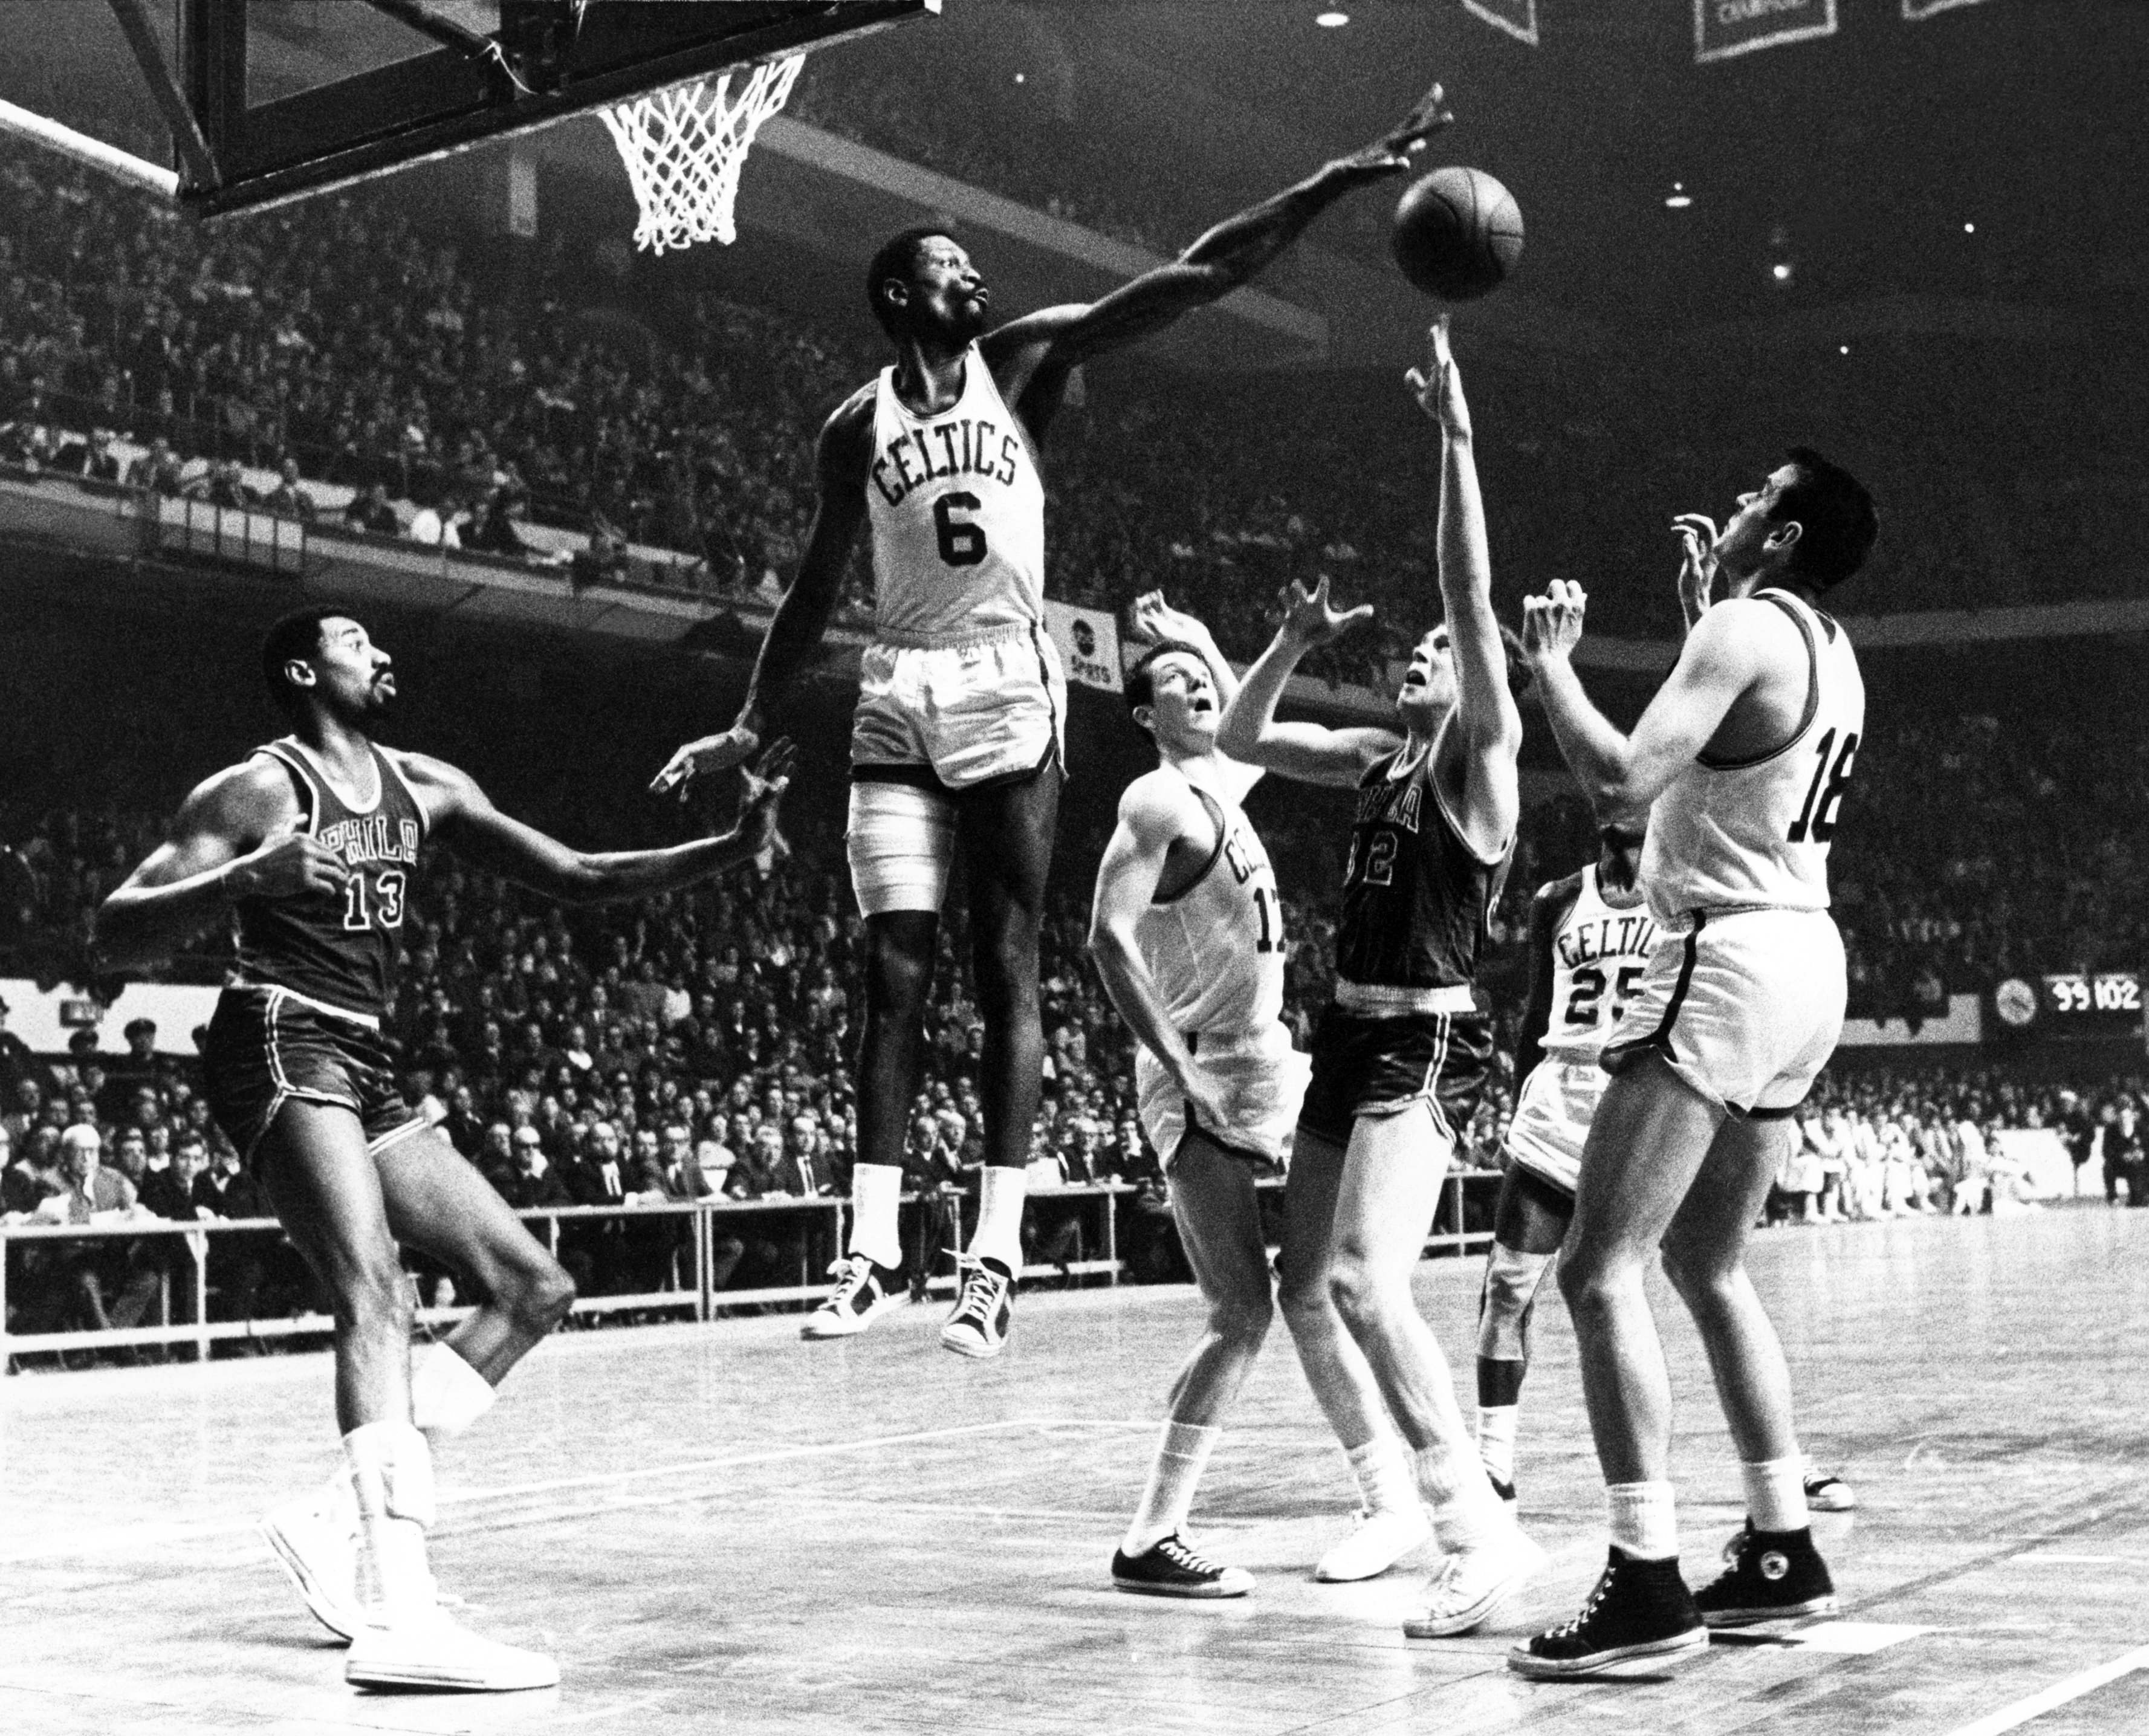 Bill Russell blocking a defenders shot in Boston Garden, very symbolical of how his career went.